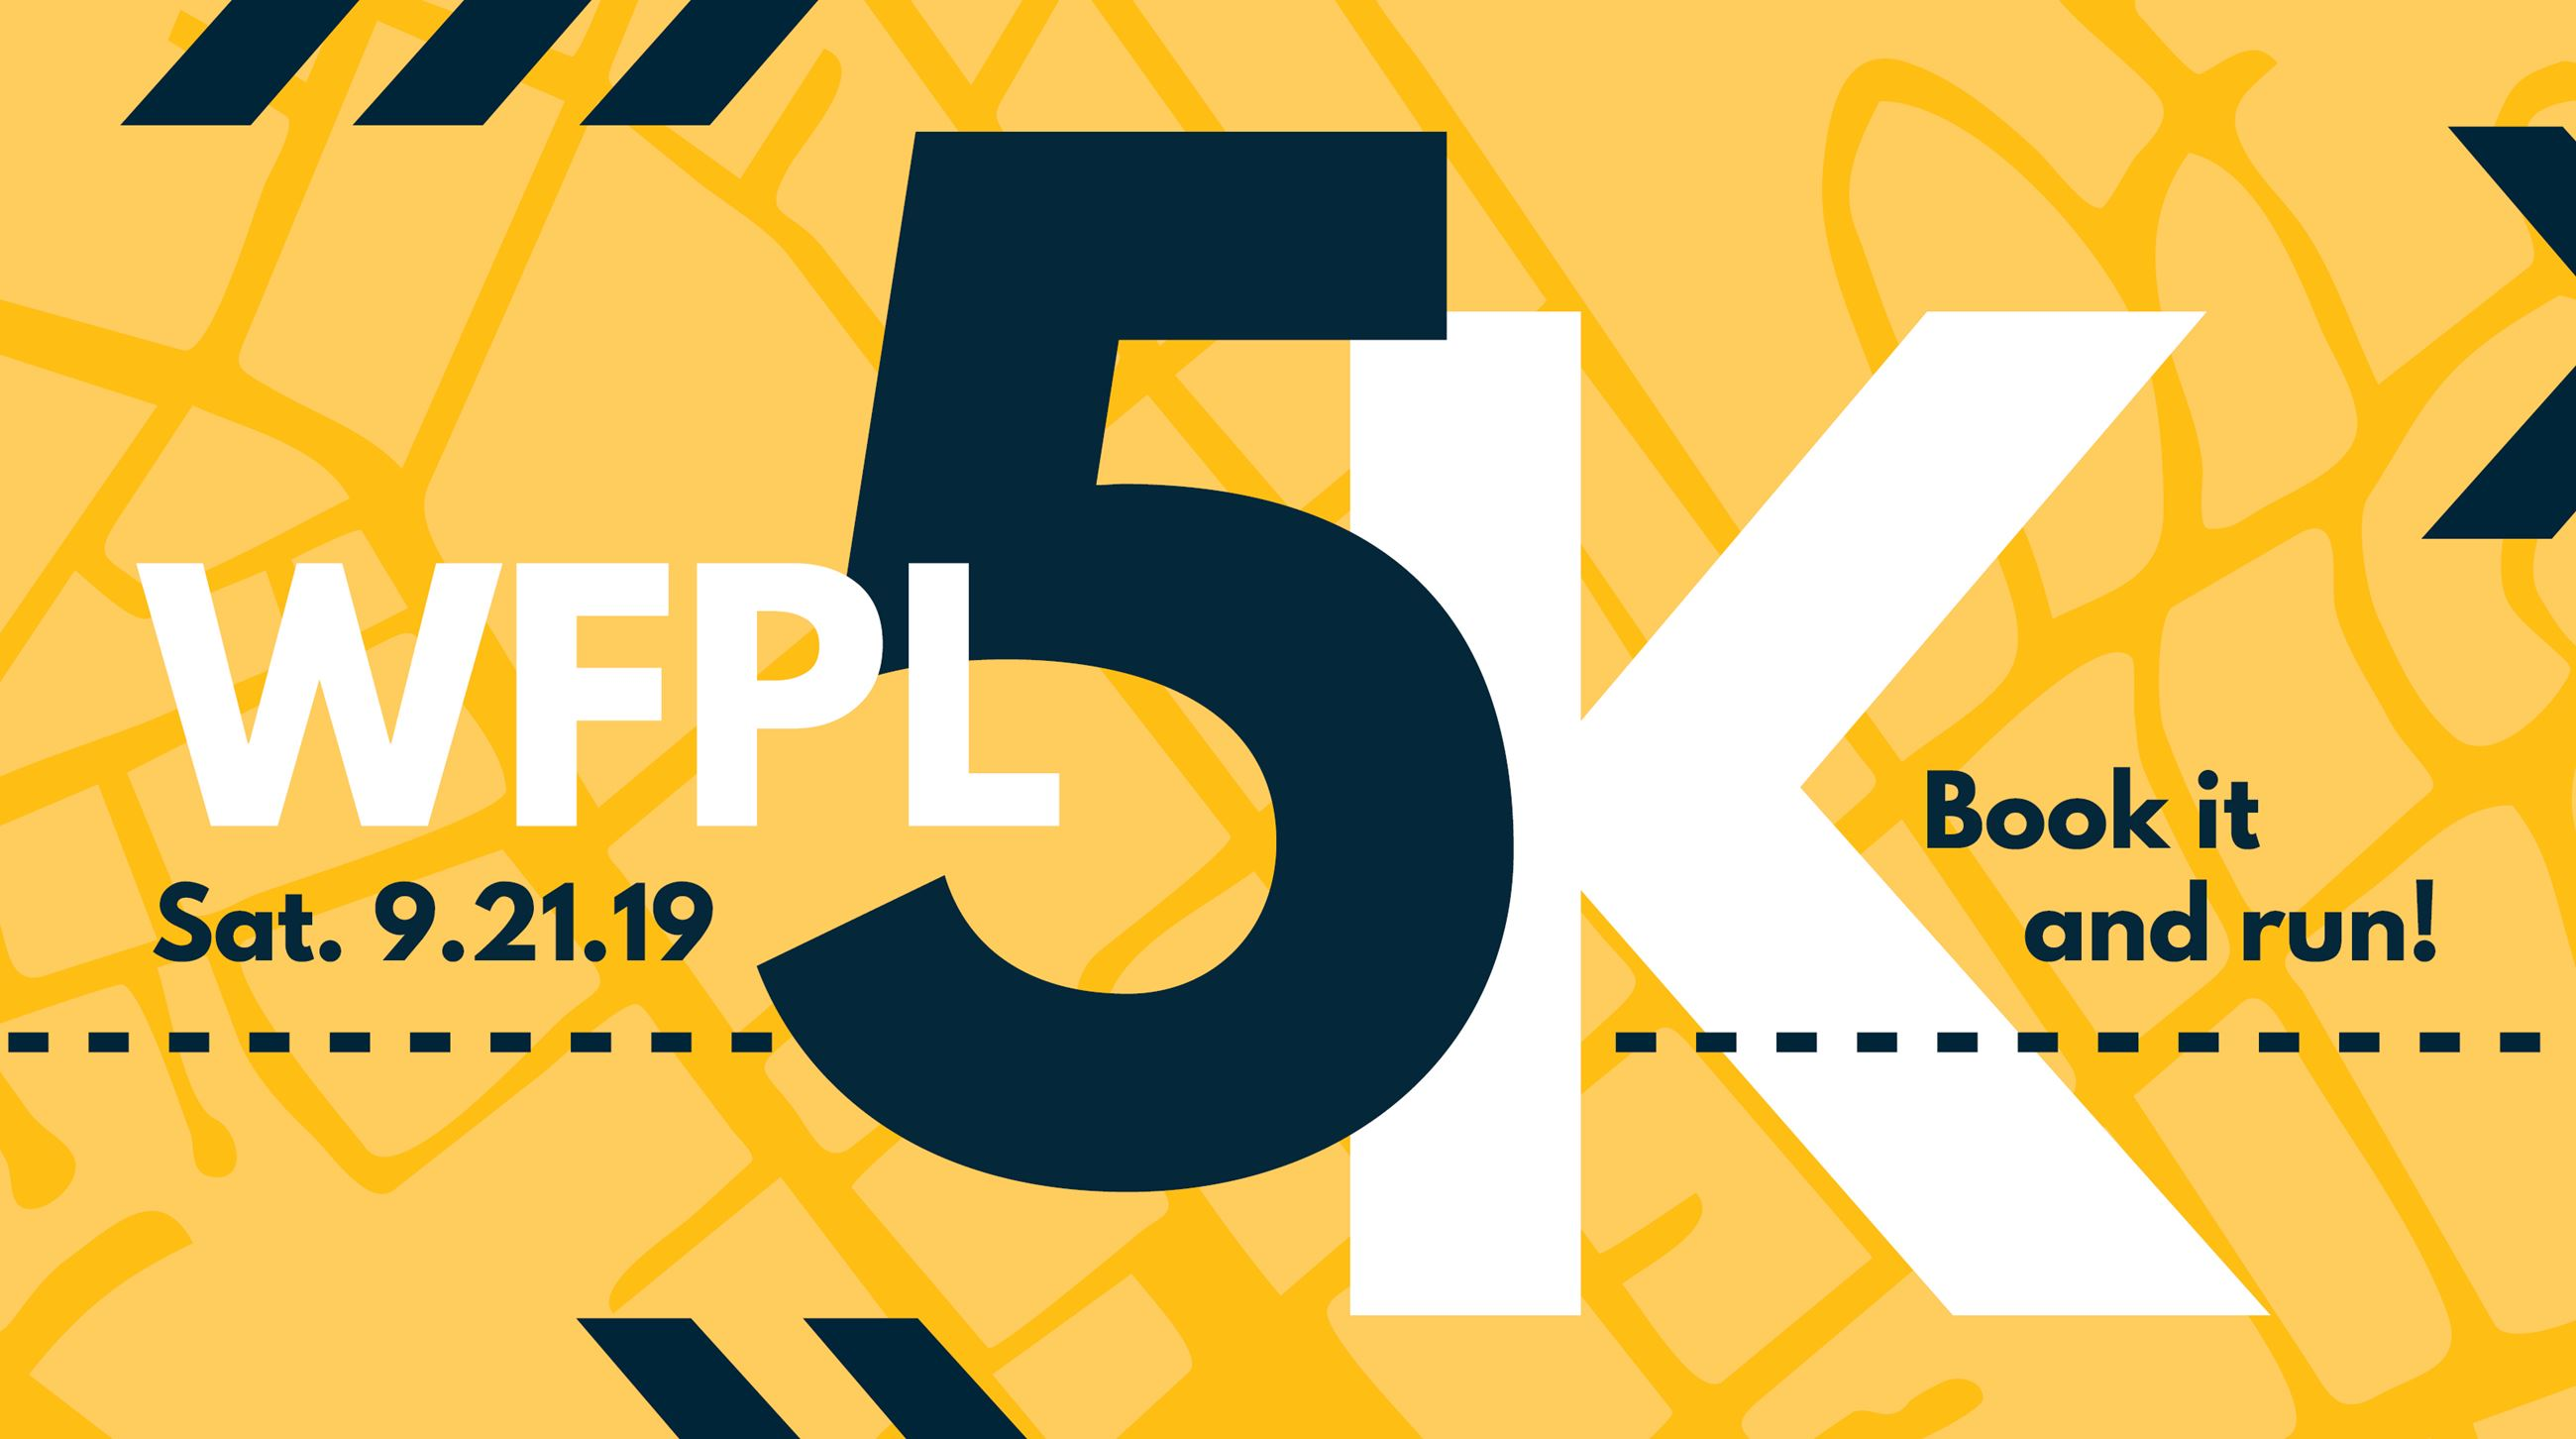 WFPL will hold the 6th Annual Book It and Run 5K on Saturday, September 21, 2019.